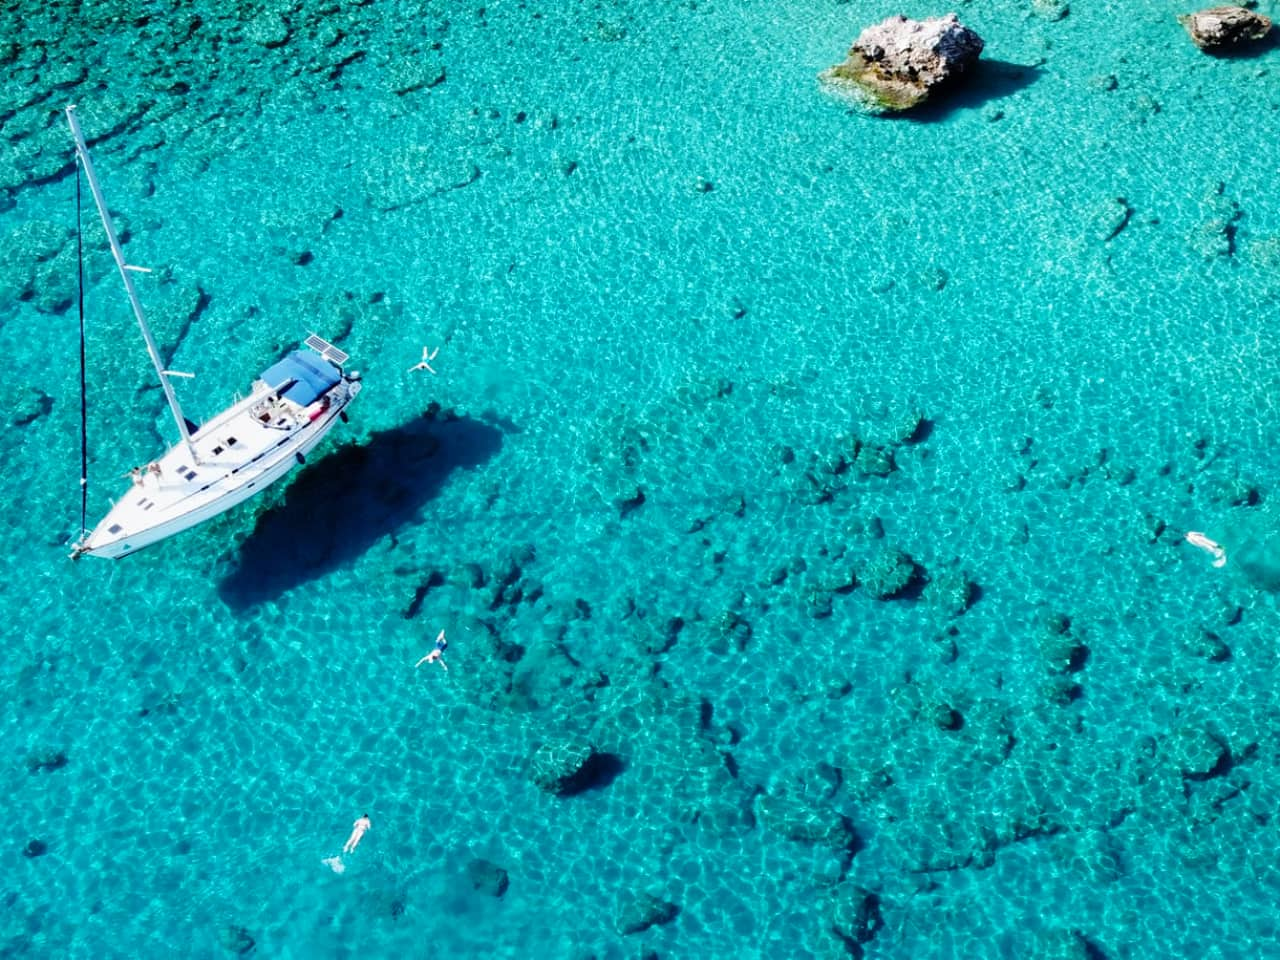 Seven-Day Sailing Trip In West Crete, best sailing trip chania crete, multi day sailing private trip crete, activities chania crete, loutro sailing trip, chania sailing trip, gavdos sailing trip, balos lagoon falasarna beach sailing, safe sailing trip chania